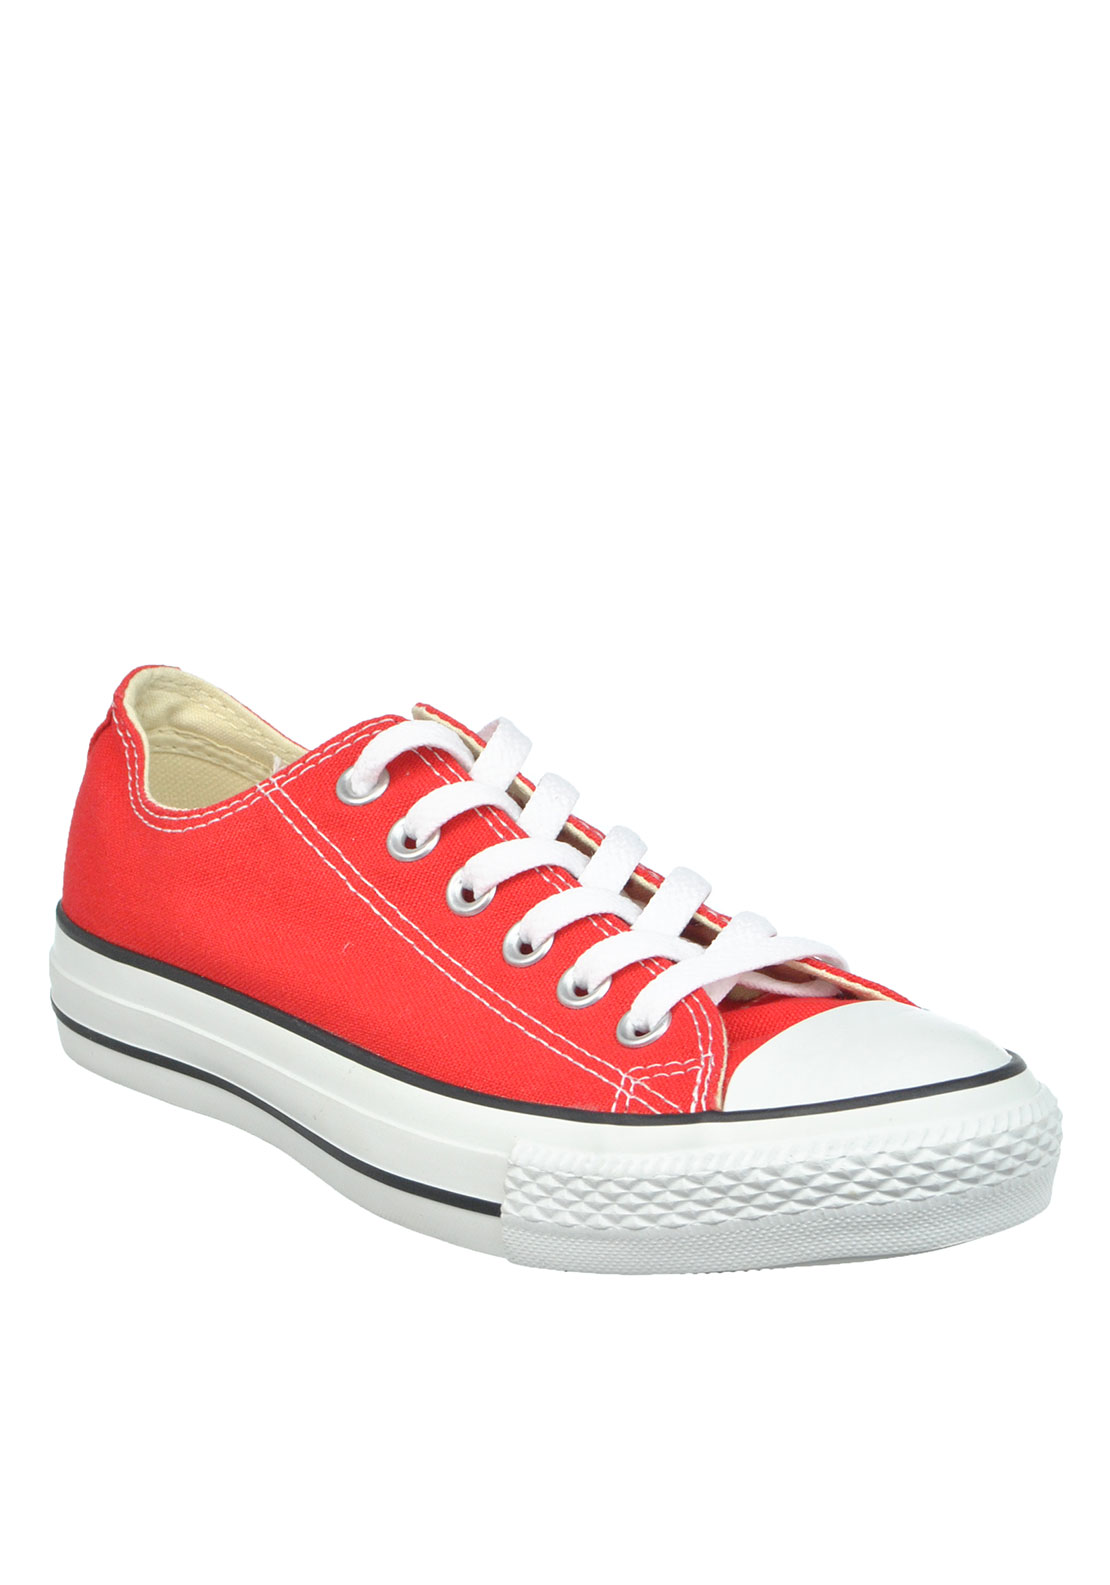 Converse Unisex All Star Ankle Trainers, Red